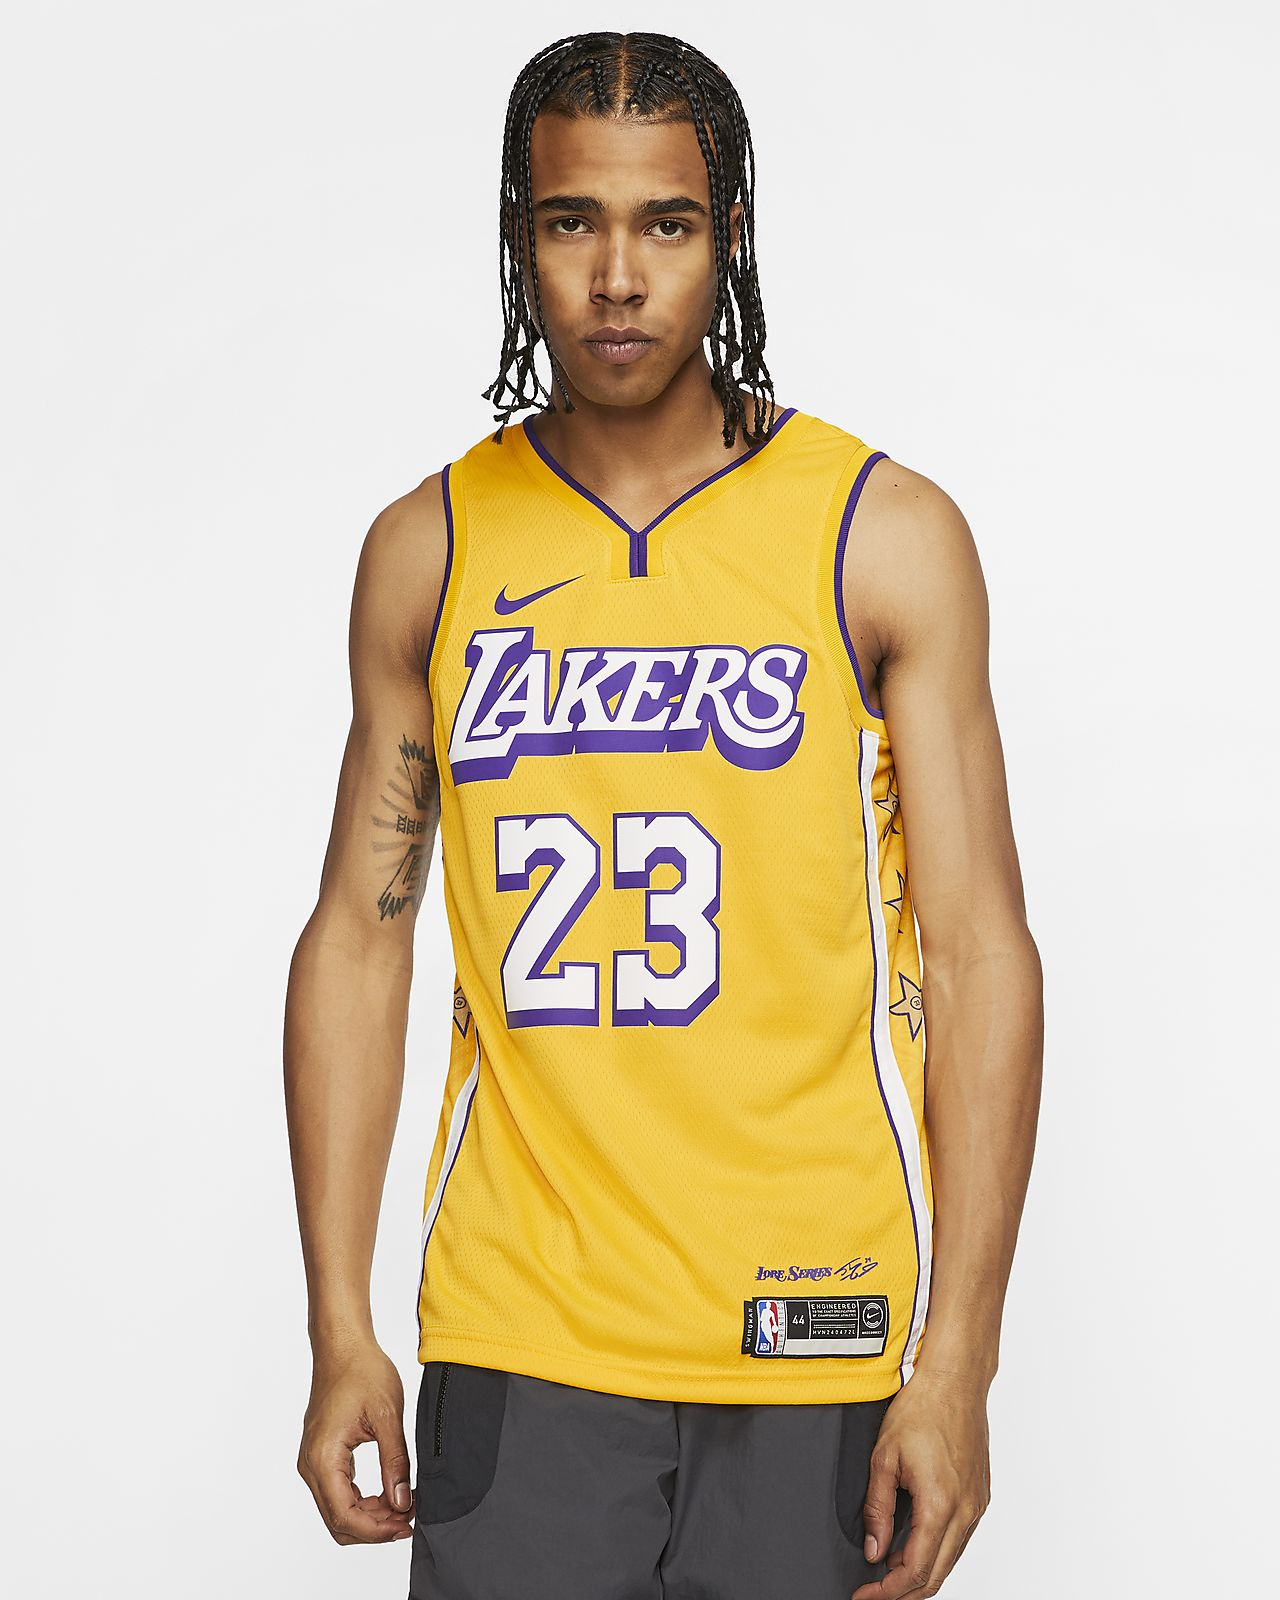 lakers jersey female jersey on sale